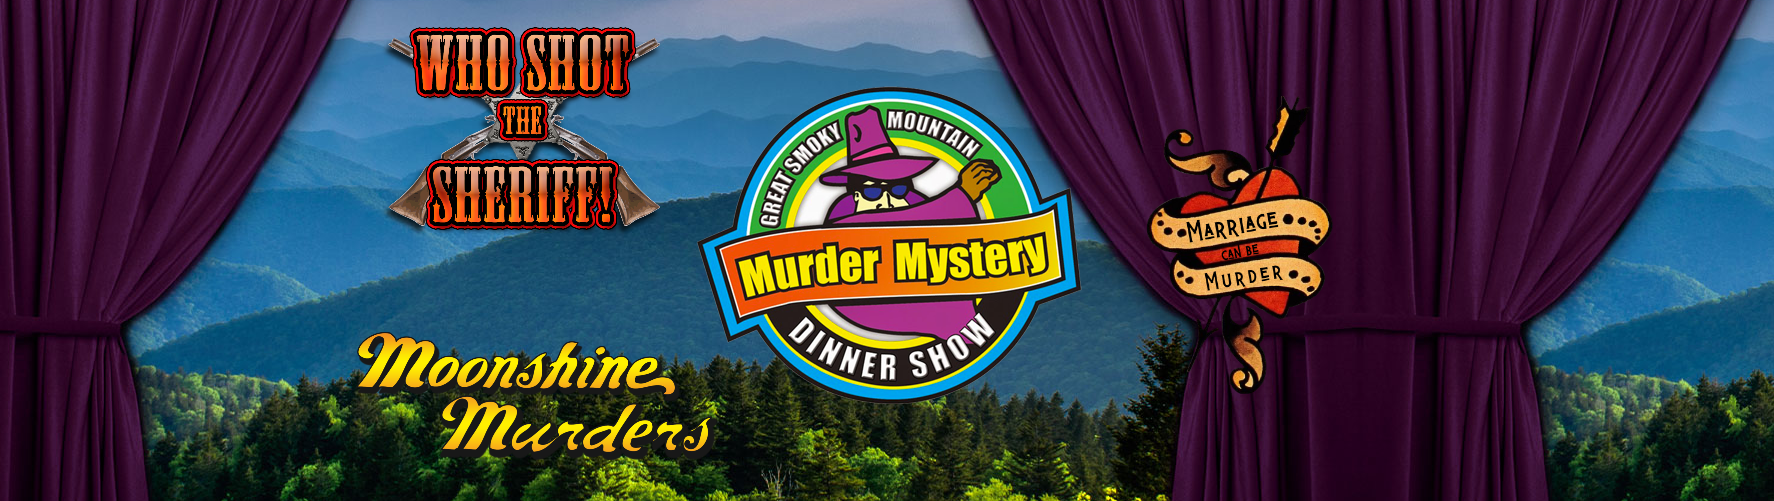 murder mystery show dinner show gatlinburg tn